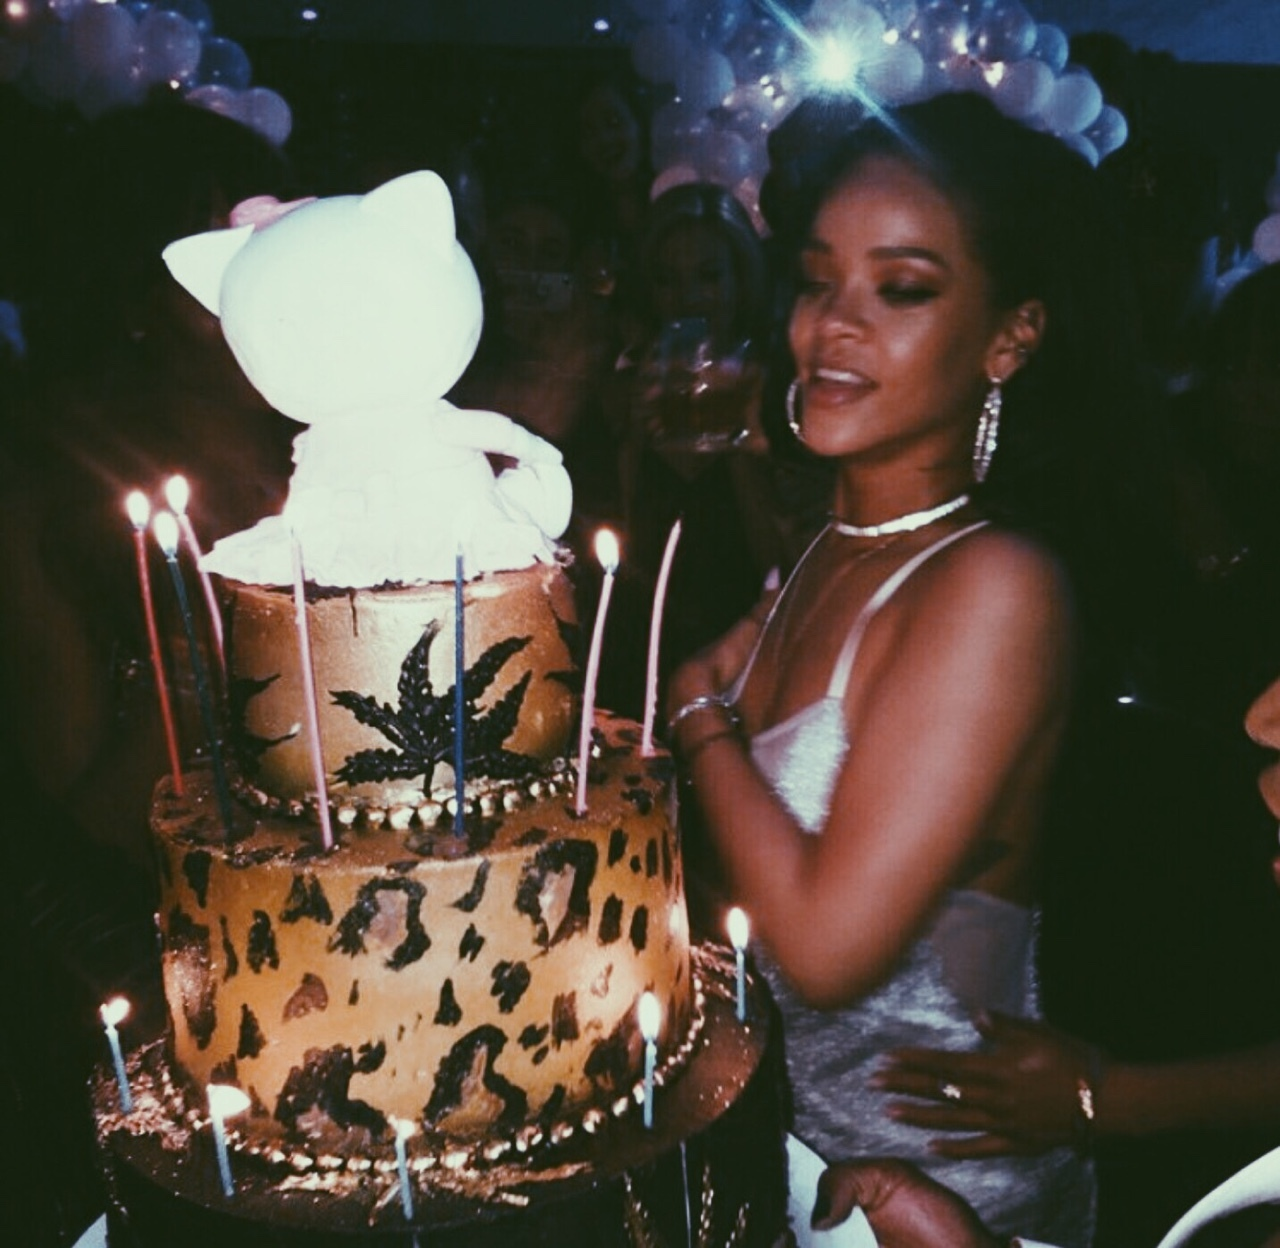 beauty, birthday, cake, celebrities, chic